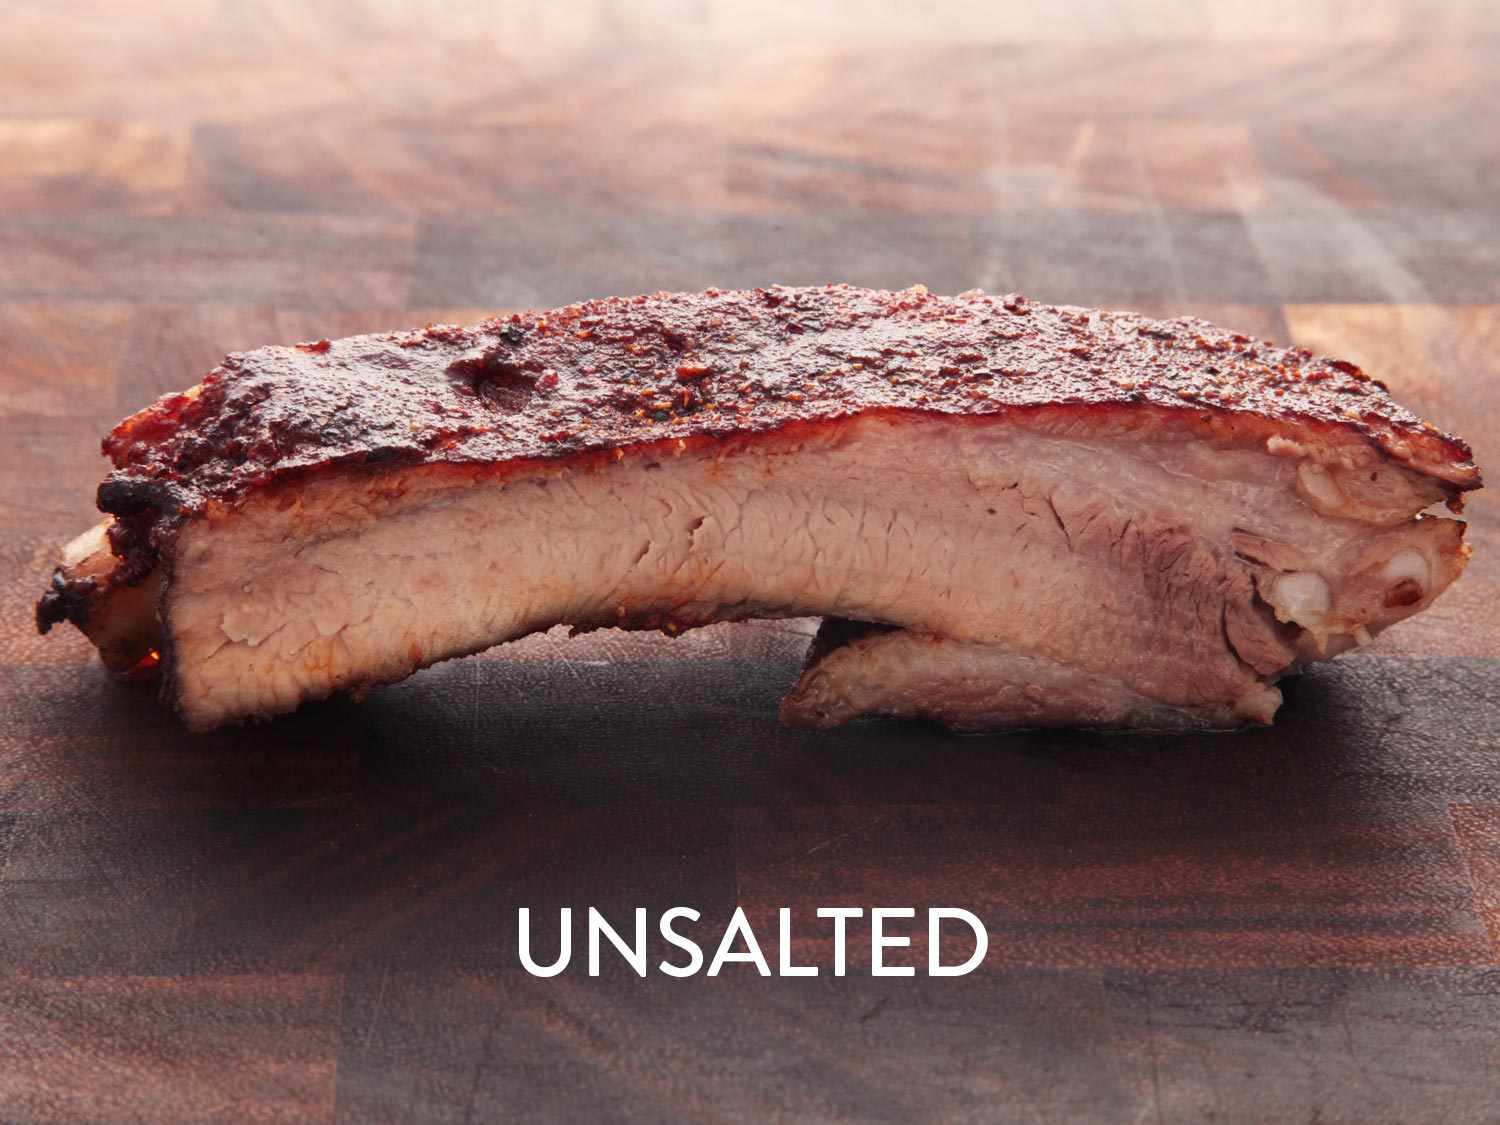 A photo of an unsalted pork rib cooked sous vide